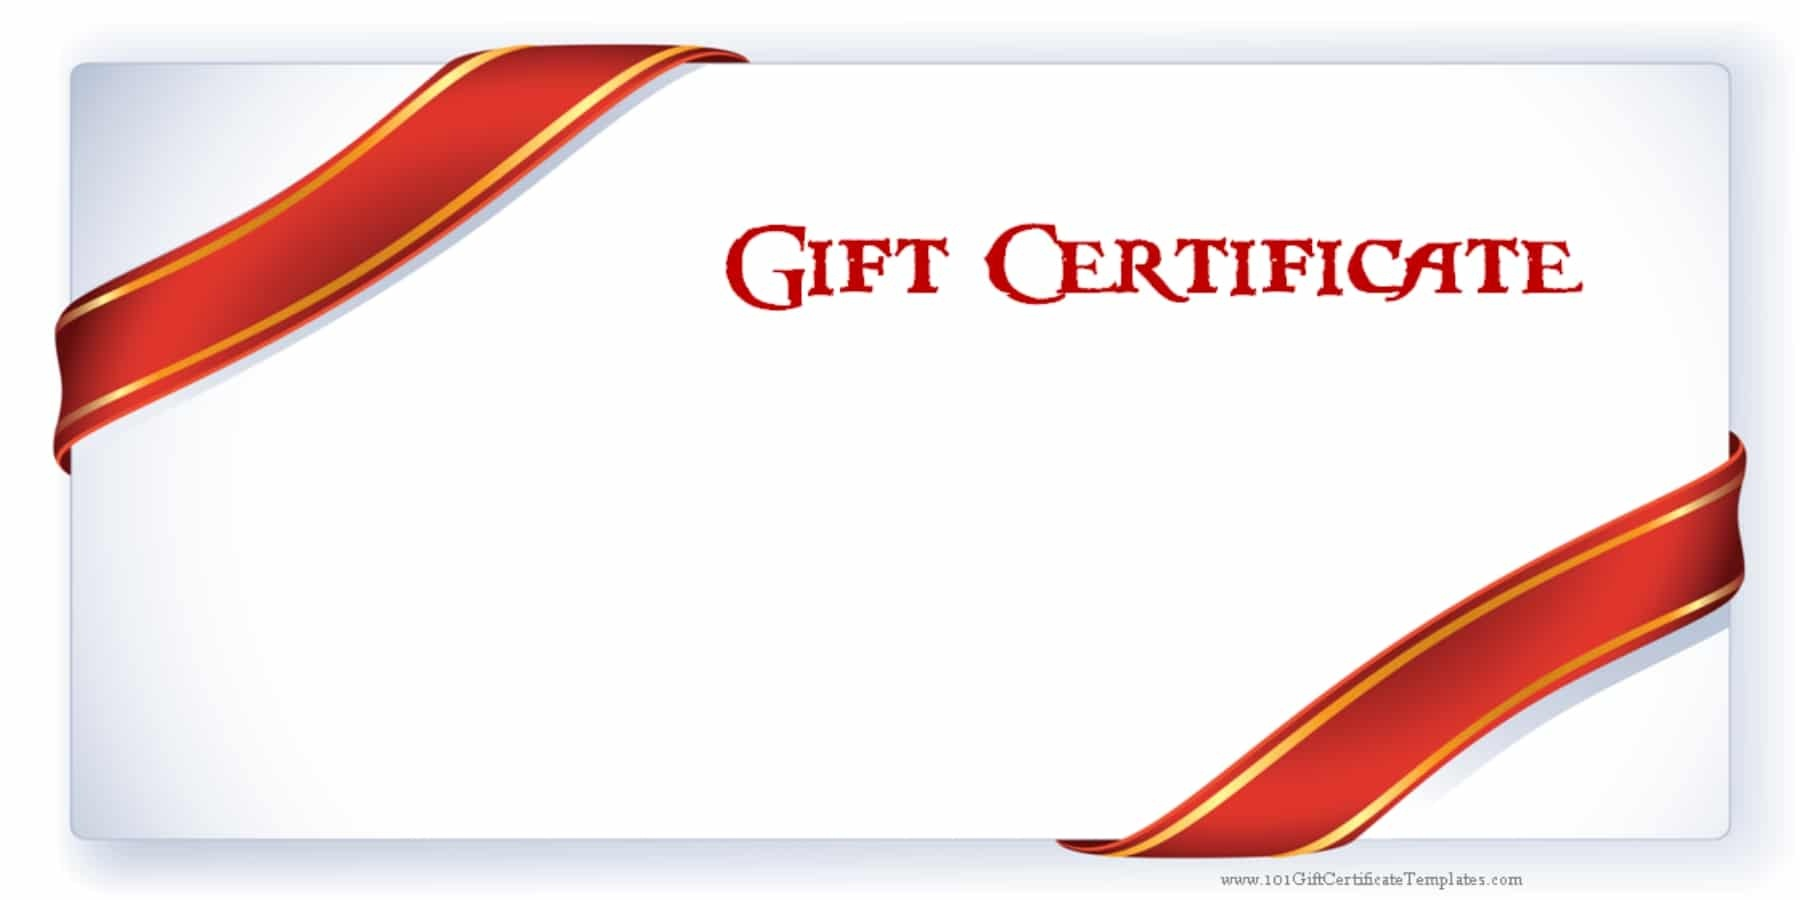 Printable Gift Certificate Templates - Free Printable Gift Cards